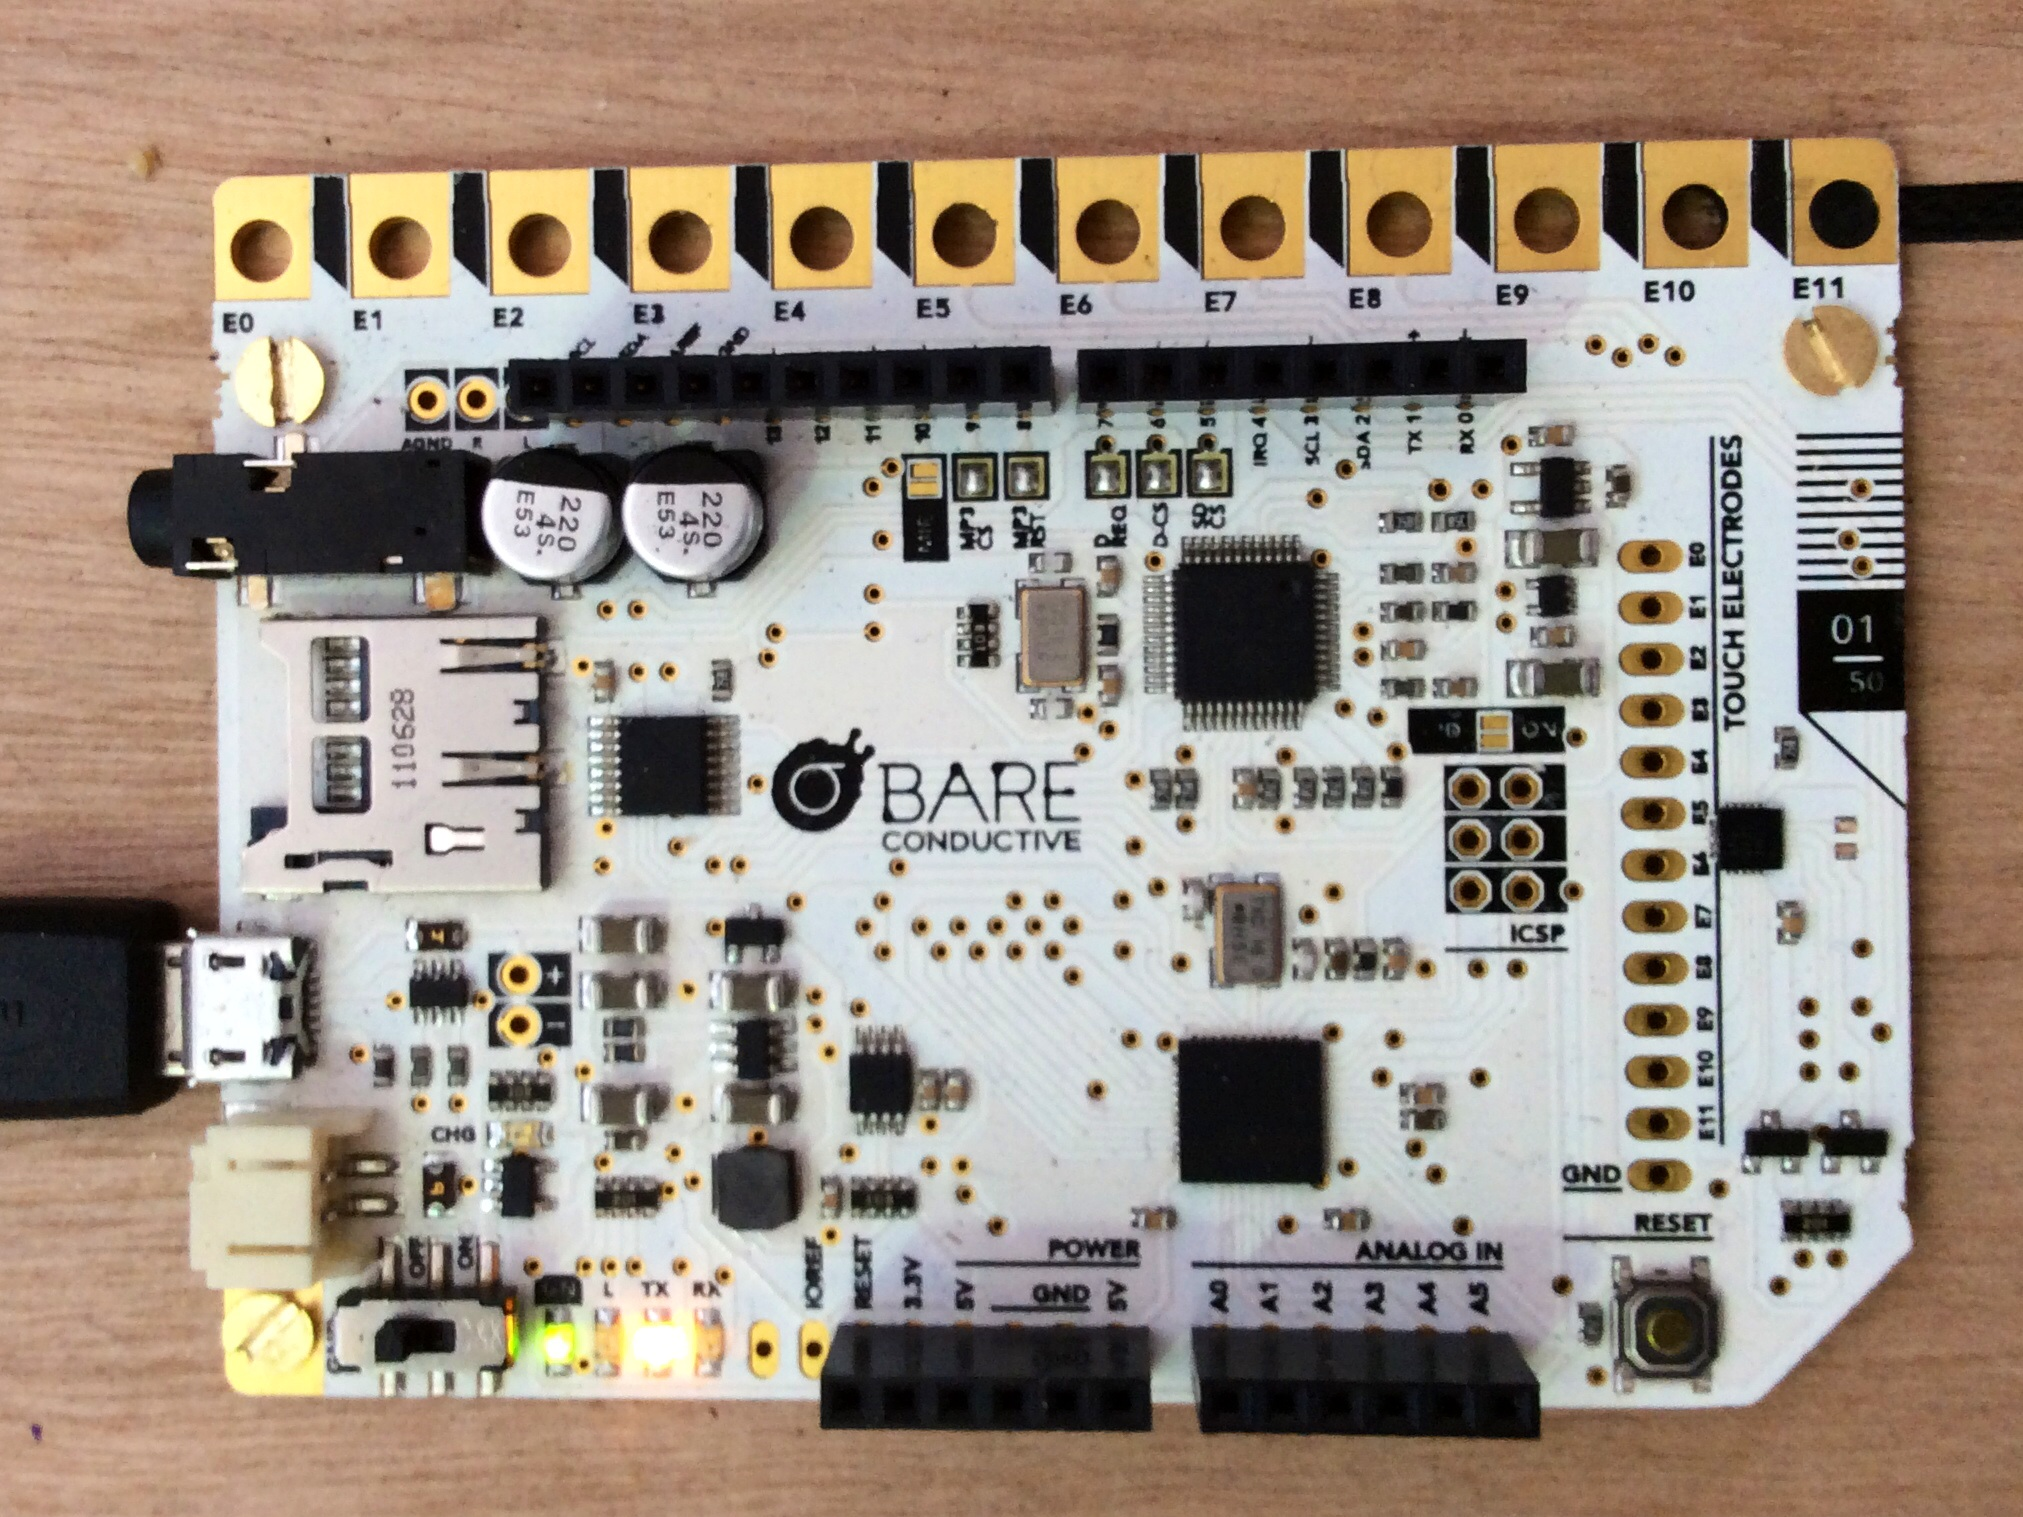 This Microcontroller is All About Capacitance